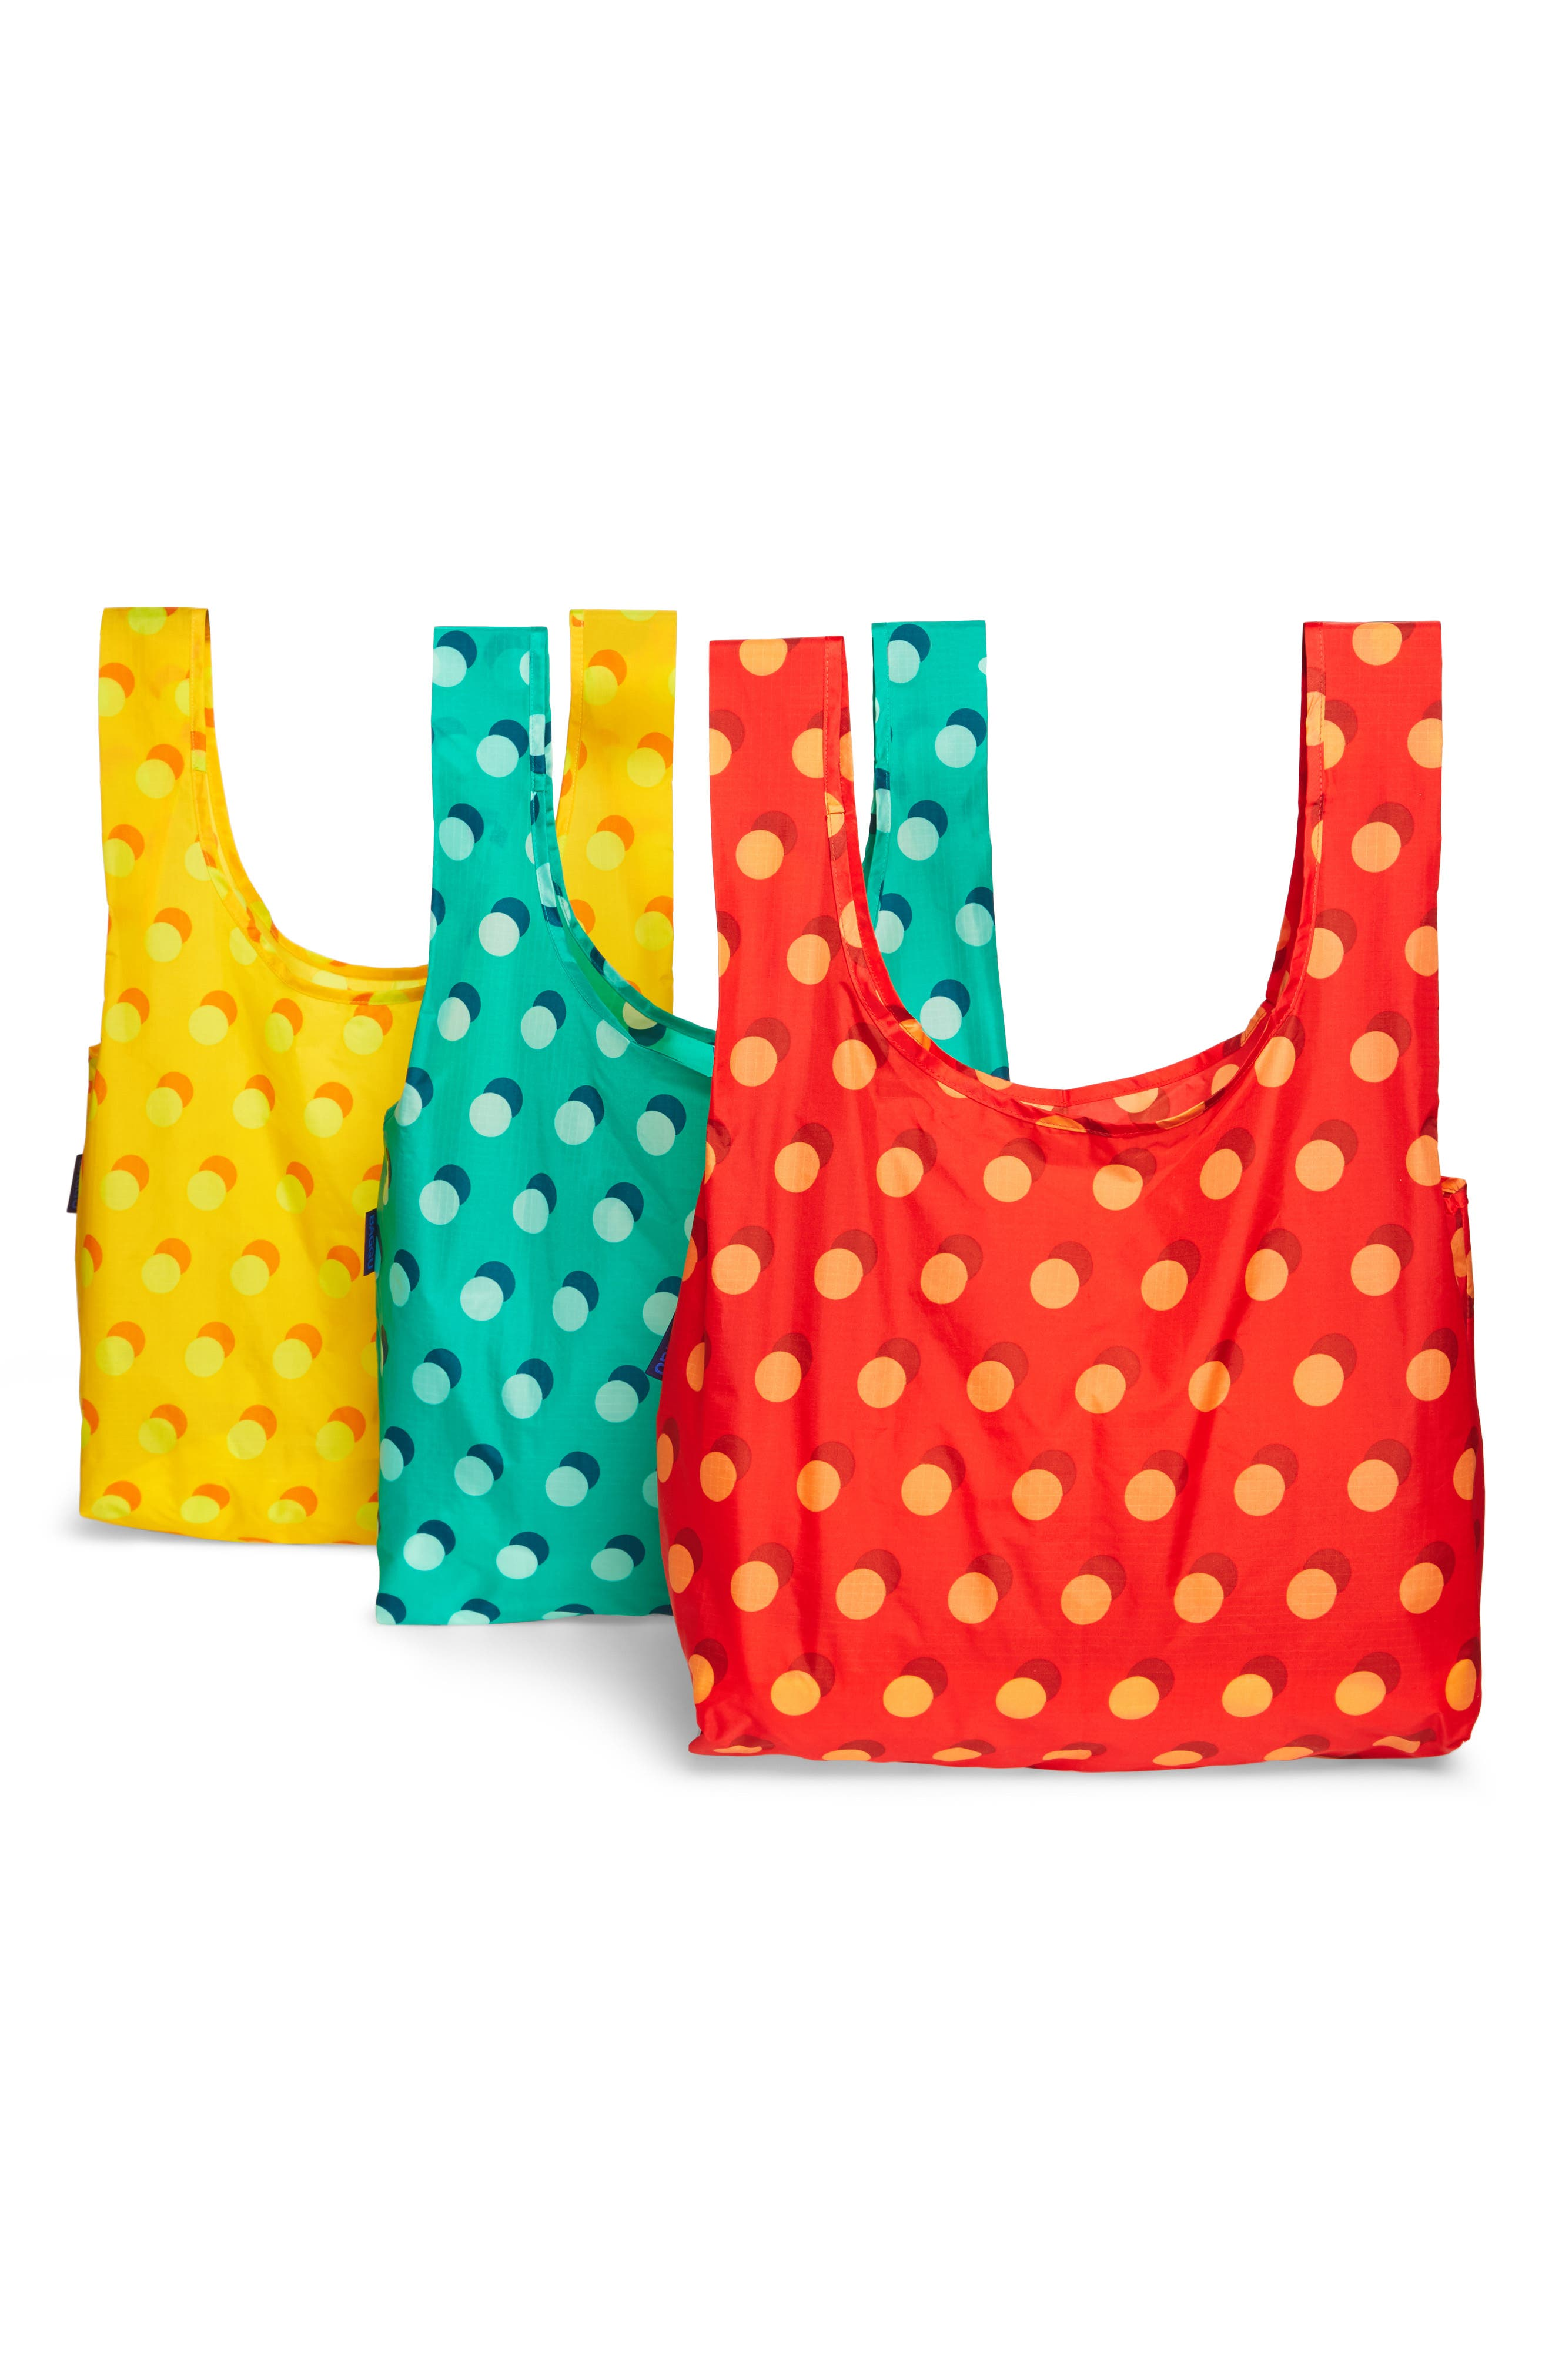 Disco Dot Set of 3 Nylon Totes,                         Main,                         color, 600